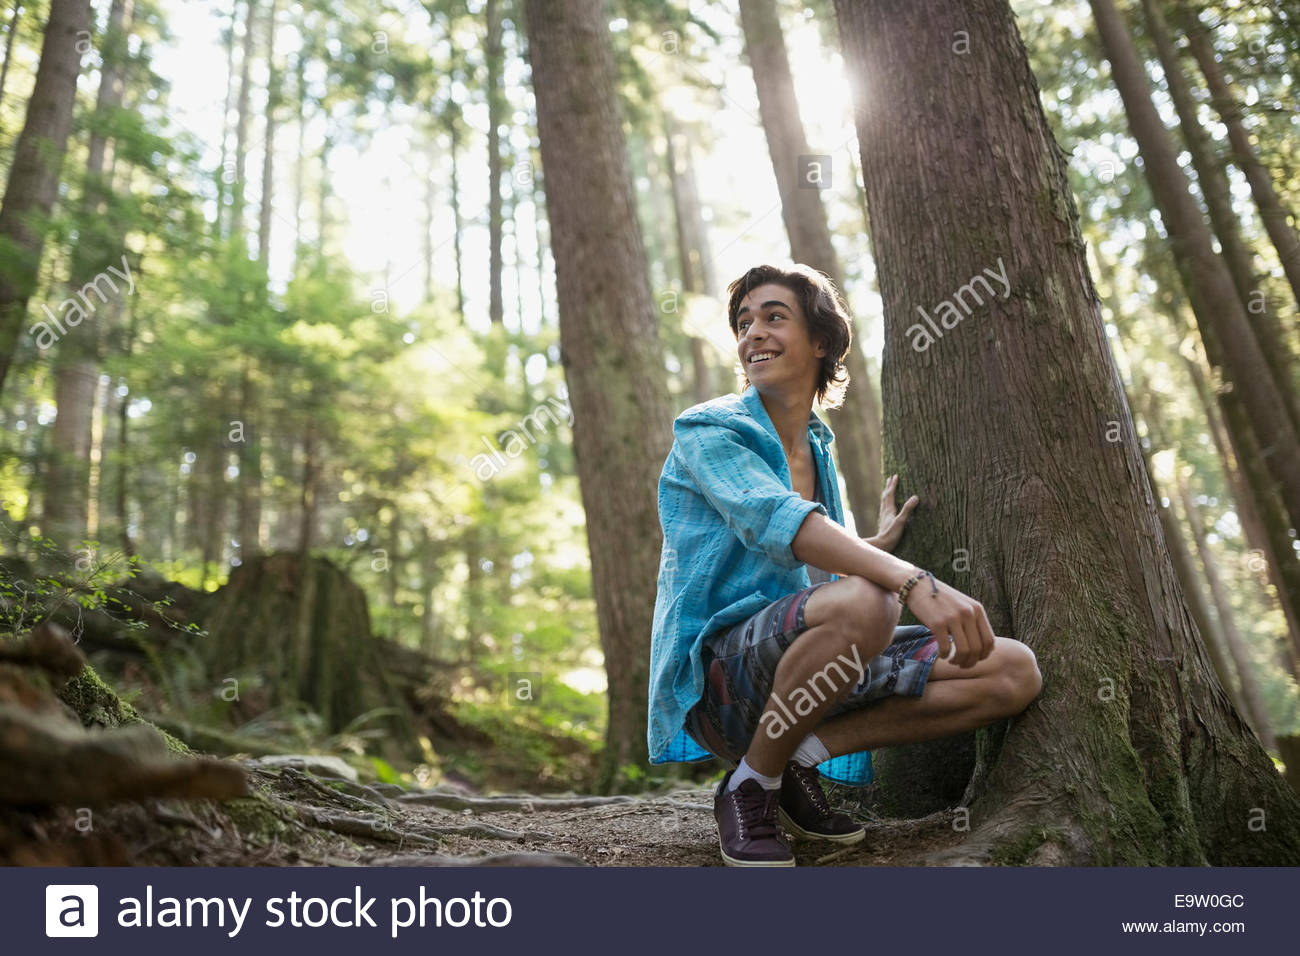 Woman crouching by tree in woods Photo Stock